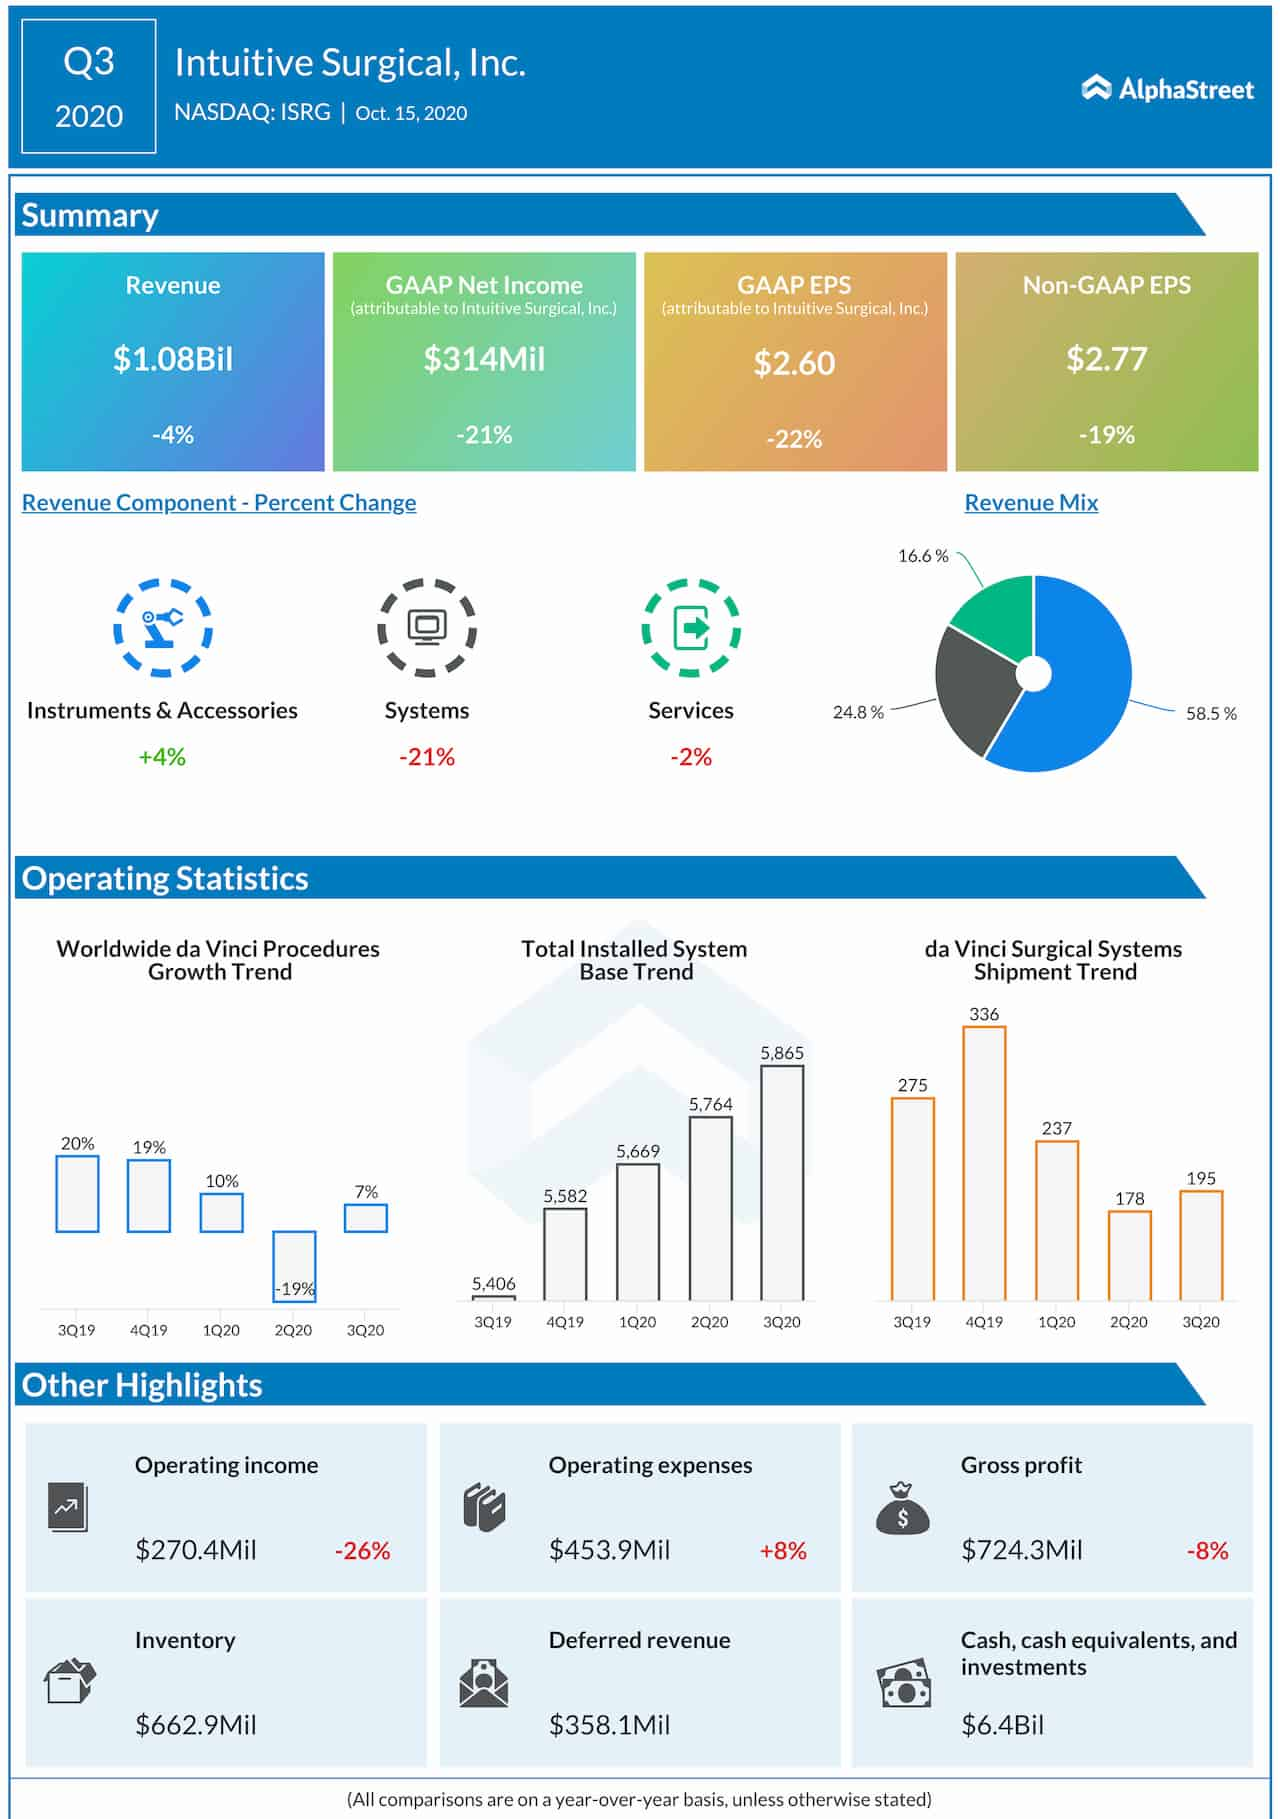 Intuitive Surgical Q3 2020 Earnings Infographic